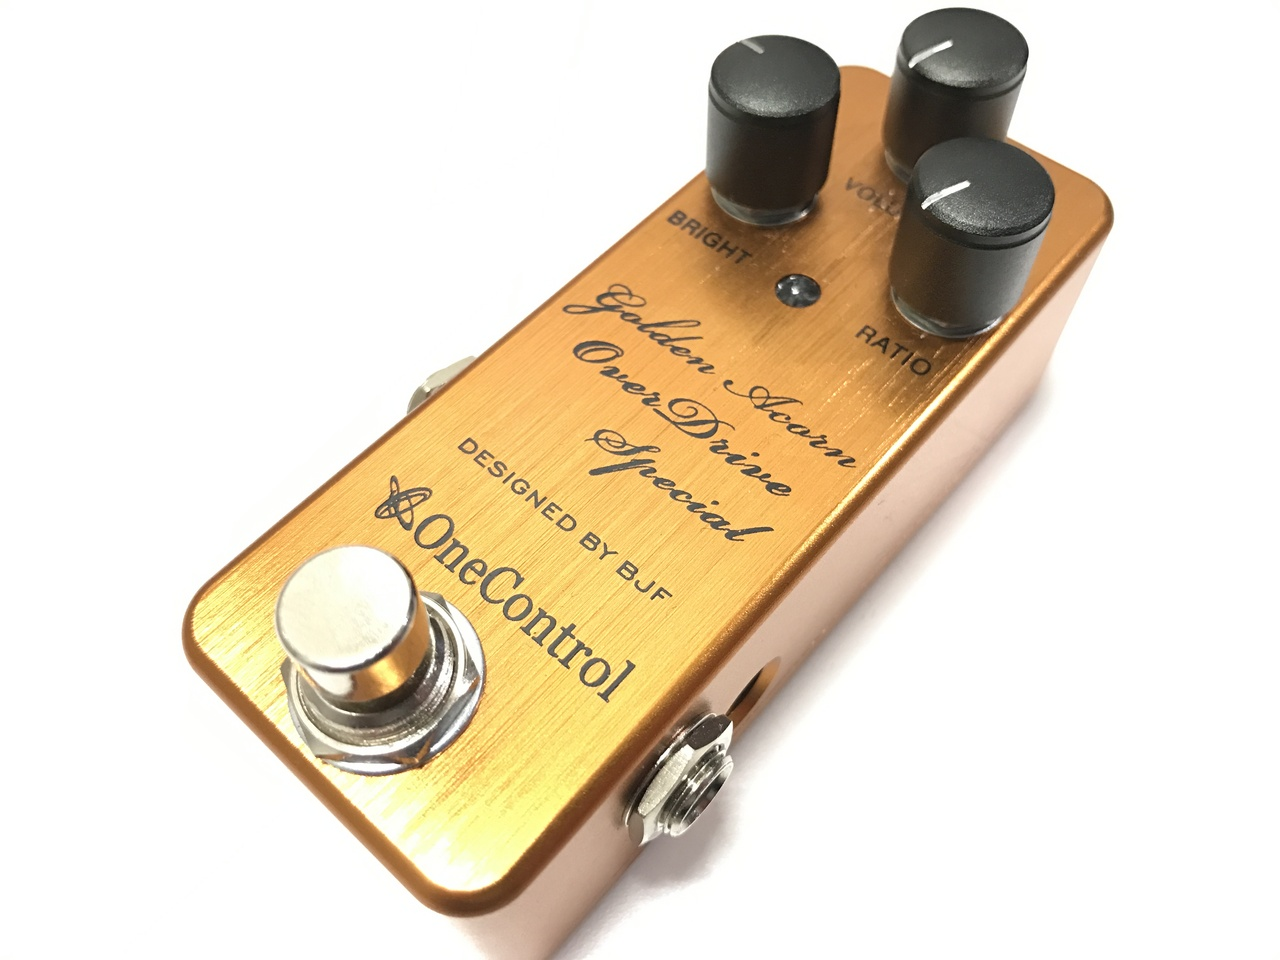 ONE CONTROL(ワンコントロール) Golden Acorn OverDrive Special